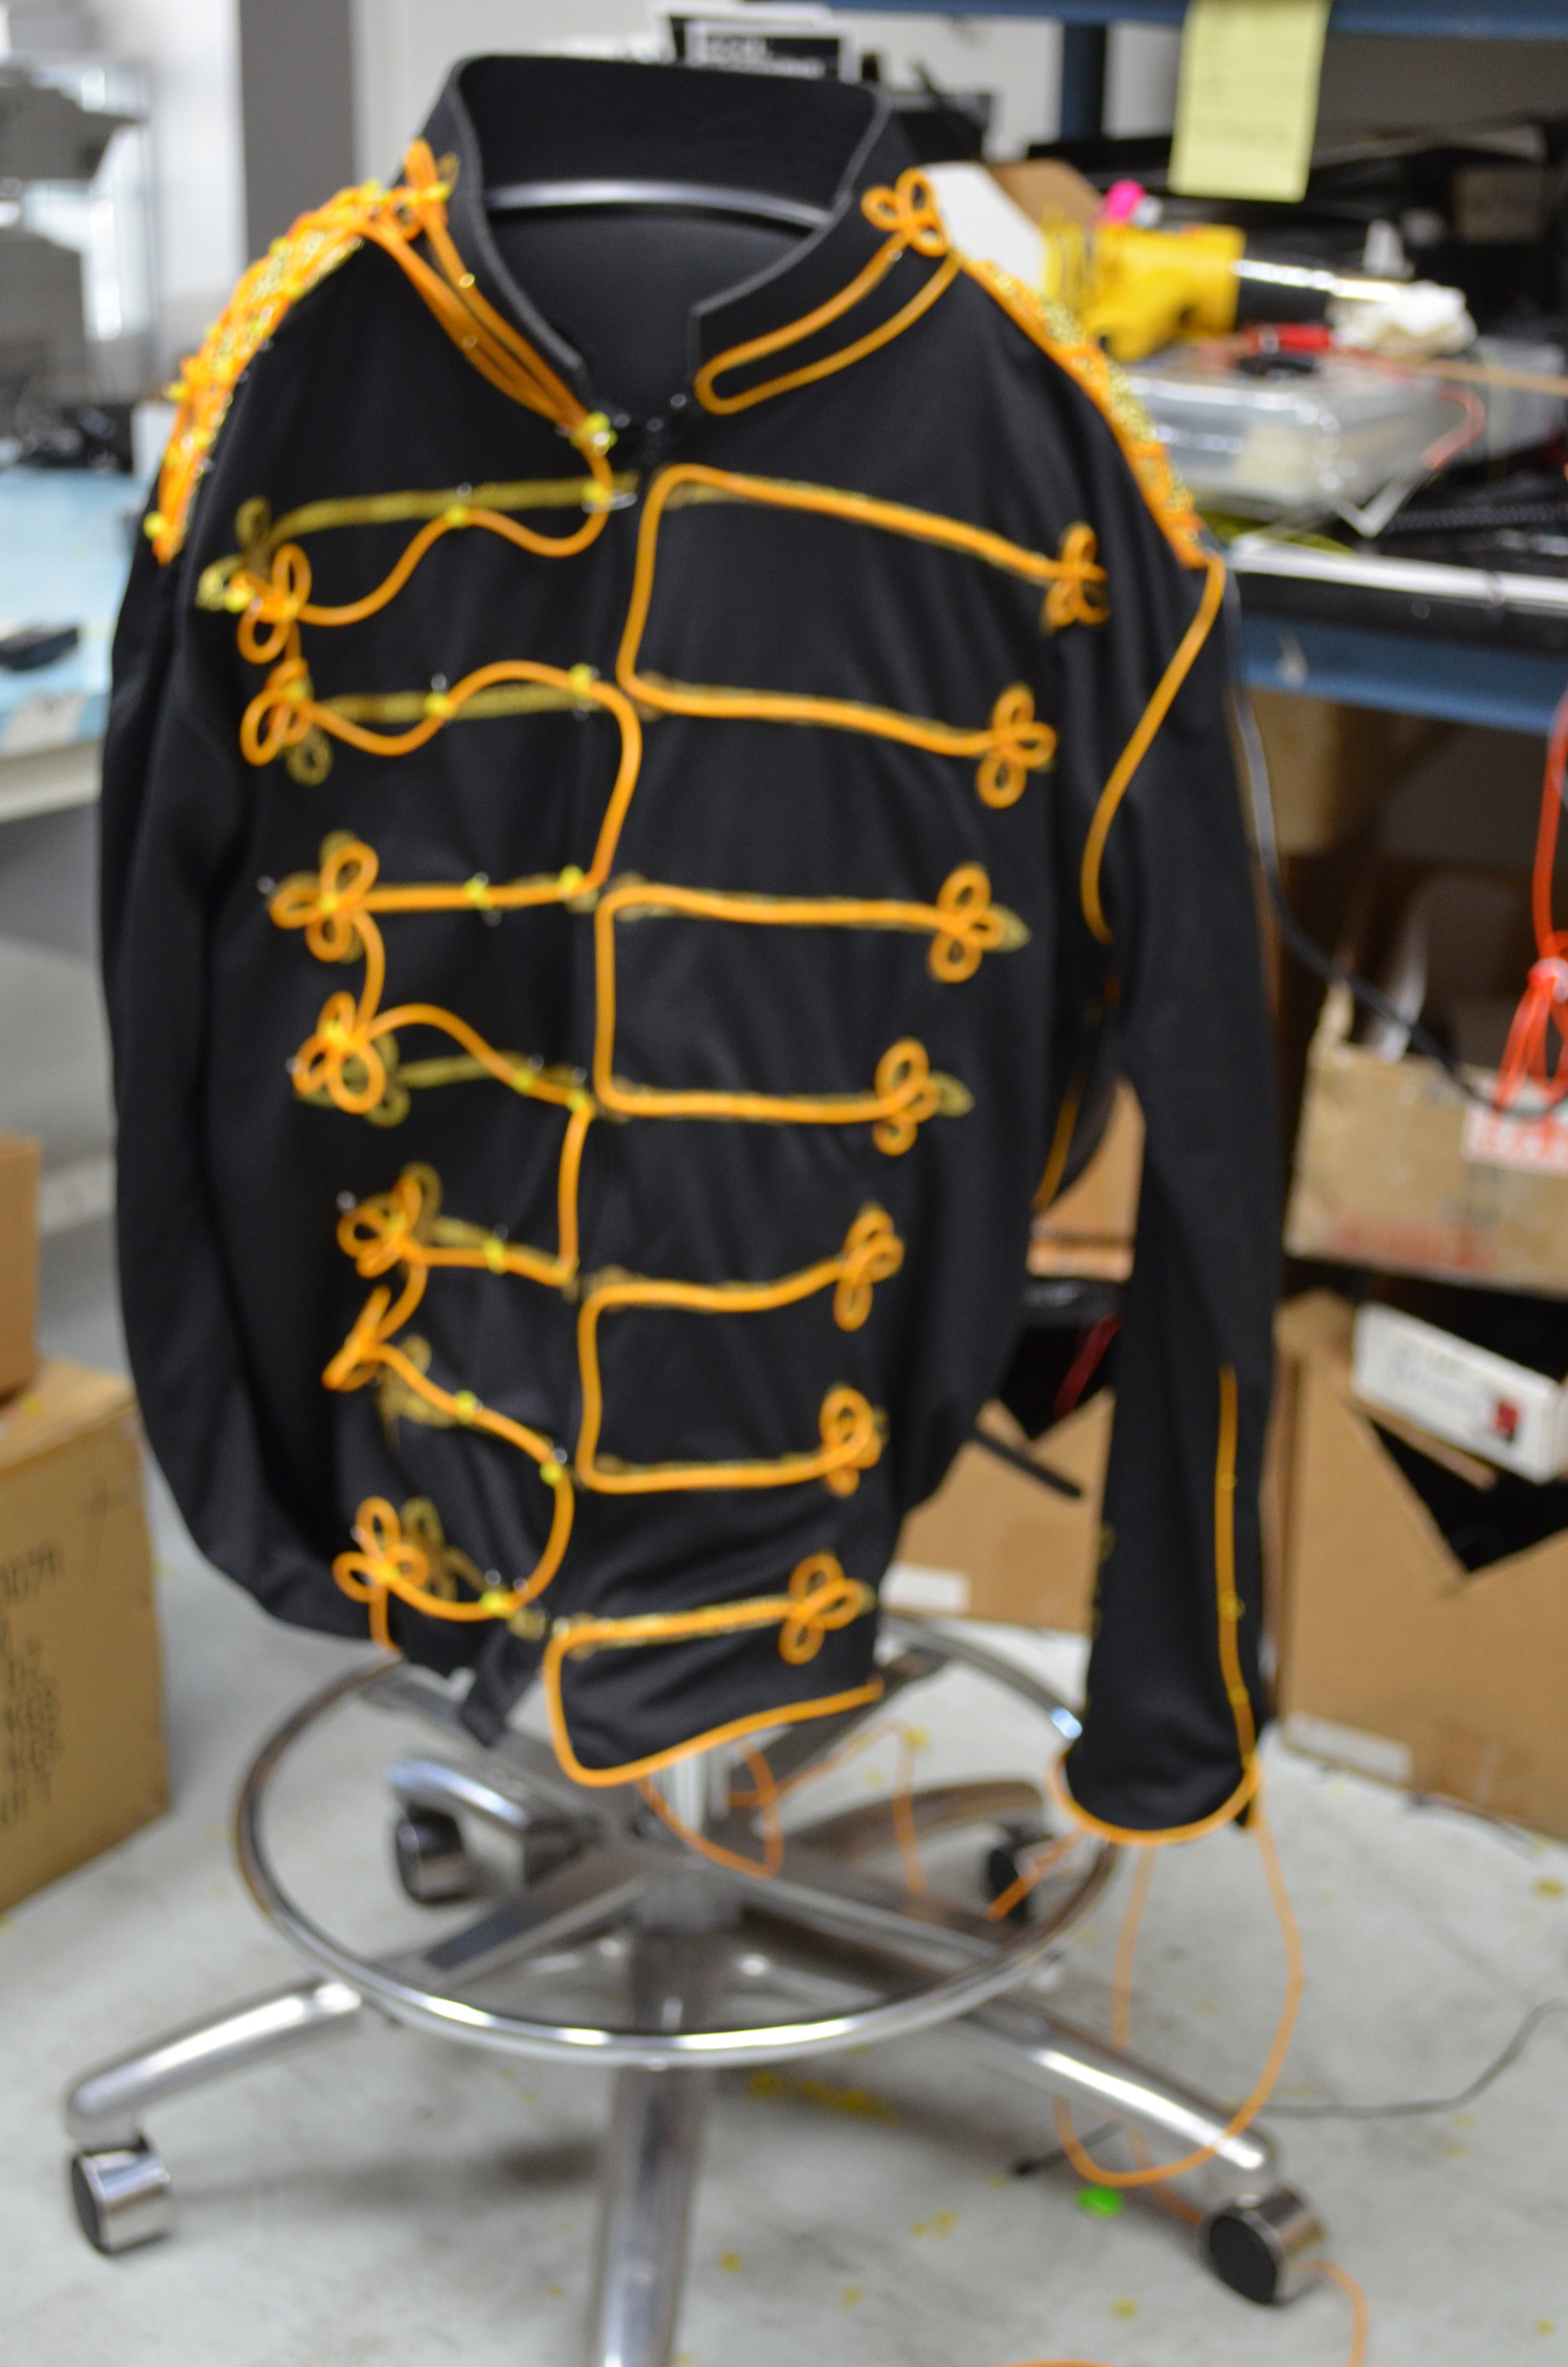 Picture of Attach Wire to the Costume Chest